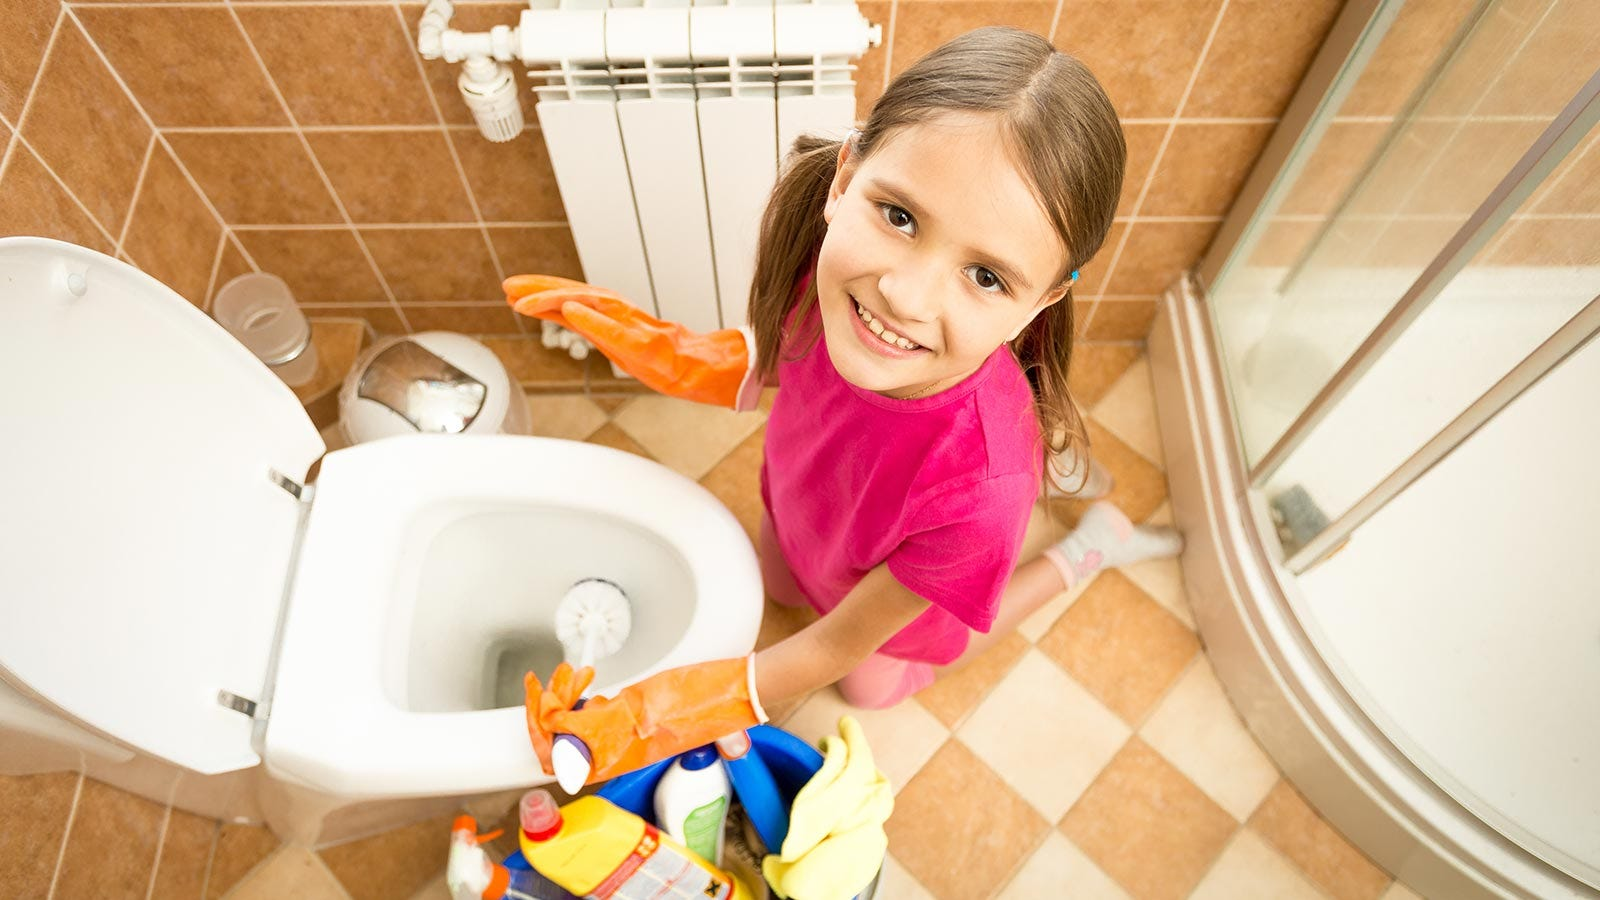 A little girl cleaning the toilet to help out with family chores.